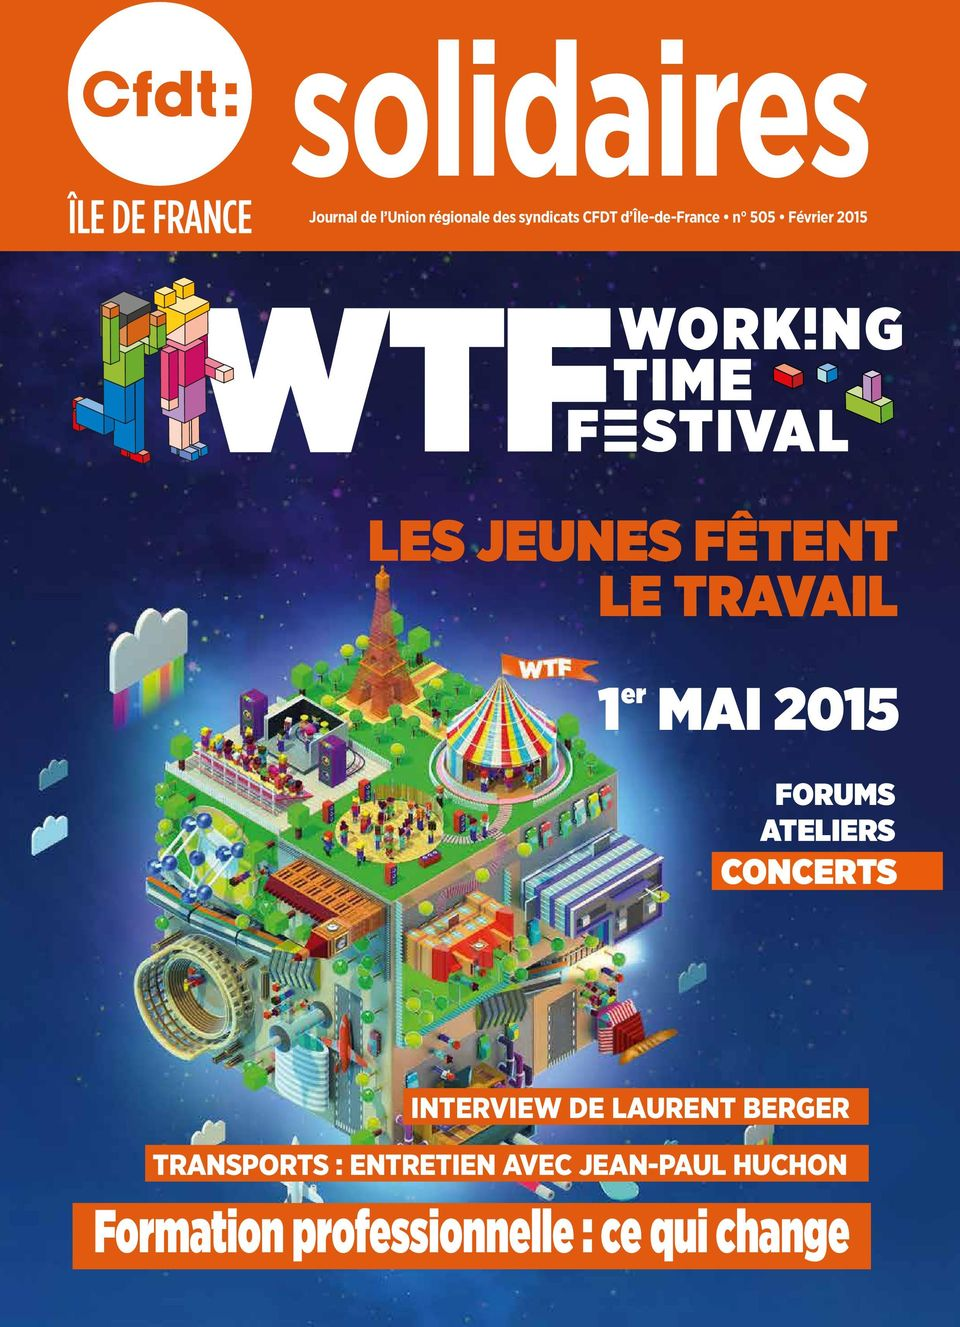 MAI 2015 FORUMS ATELIERS CONCERTS INTERVIEW DE LAURENT BERGER